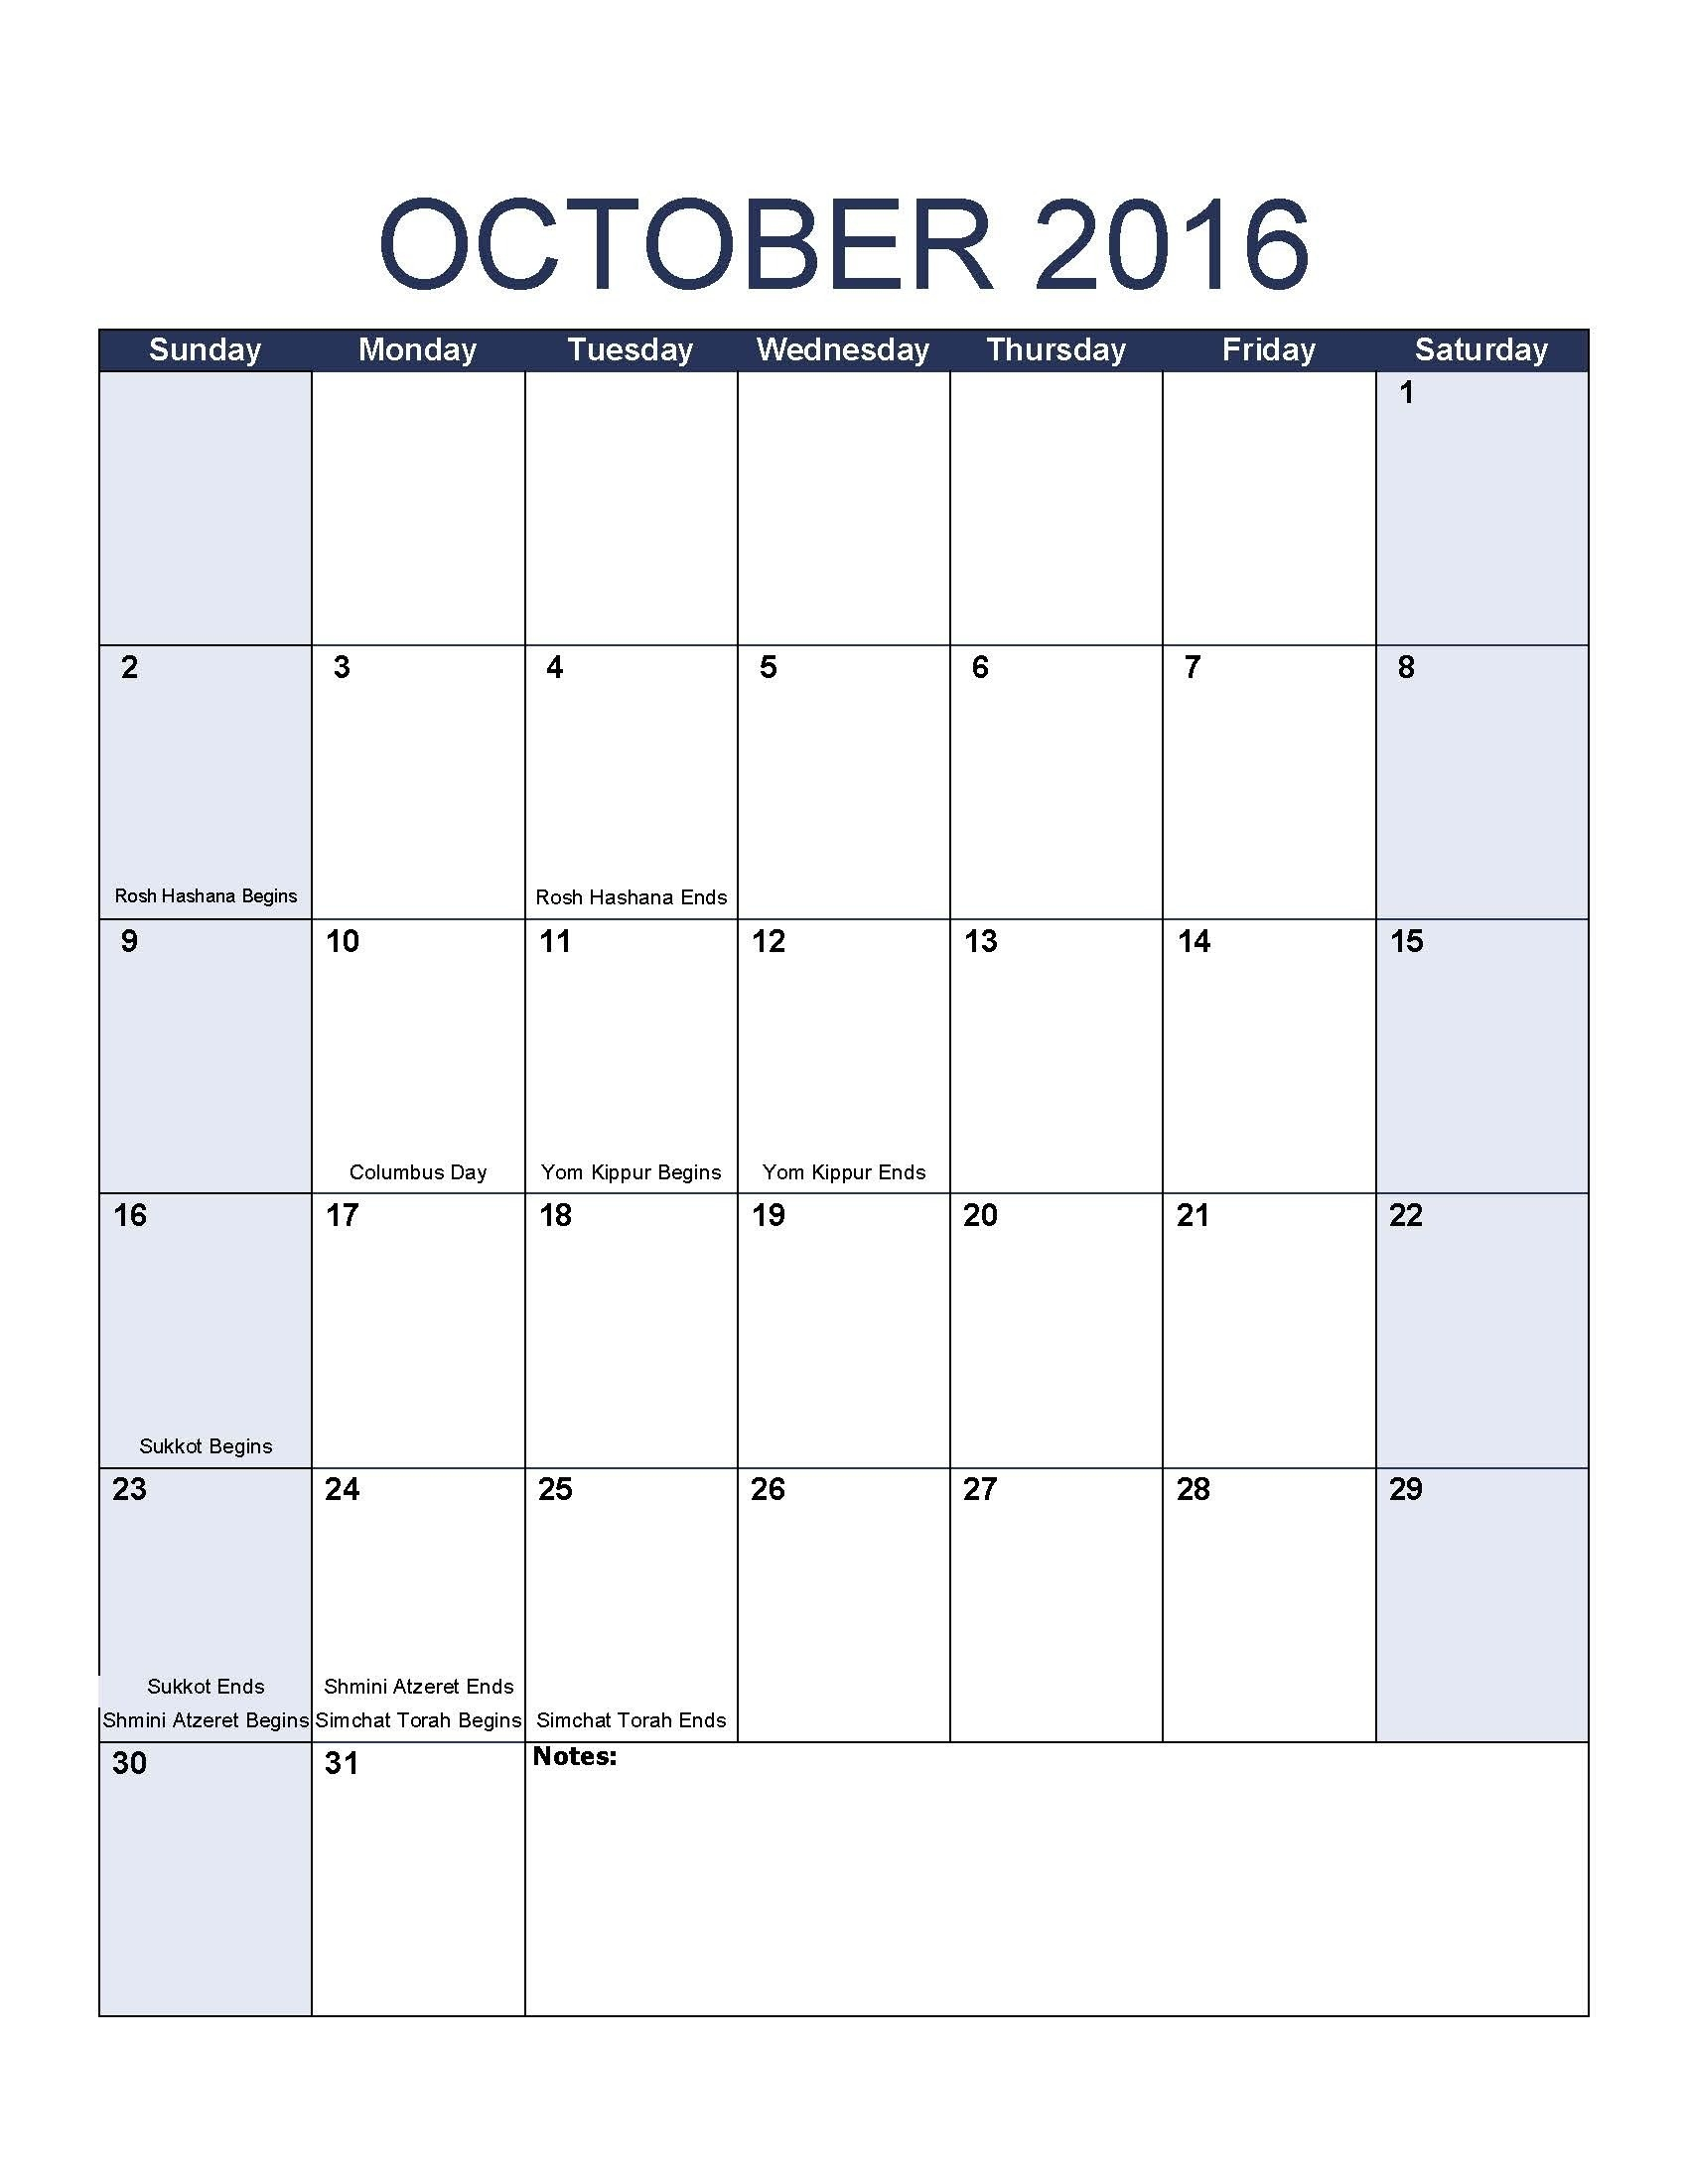 October 2016 Calendar Template Intended For Jewish Holidays-Dates For The Jewish Holidays In October